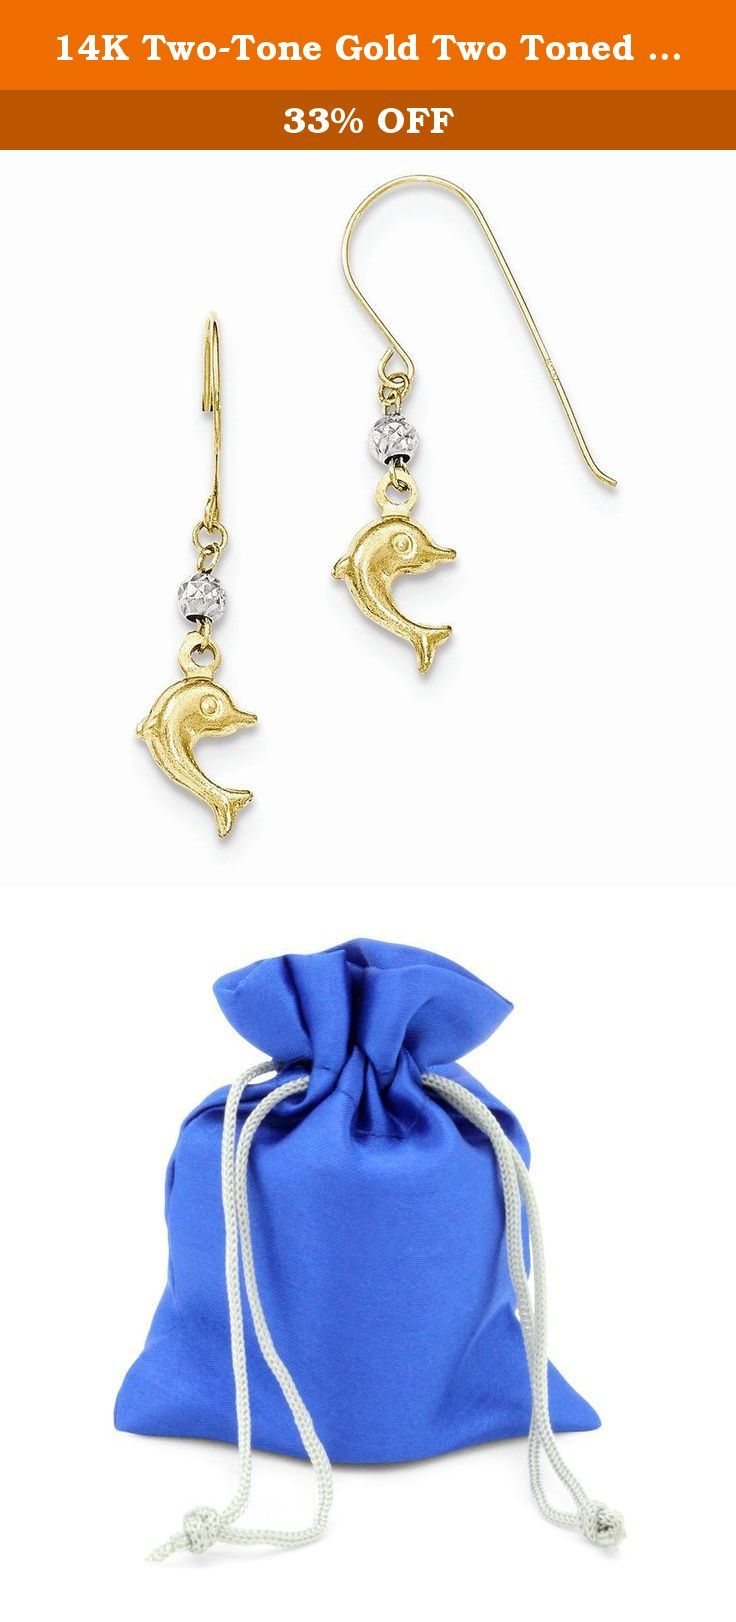 14K Two-Tone Gold Two Toned Puffed Dolphin Shepard Hook Earrings. 14k two-tone gold earrings. Made in Indonesia.